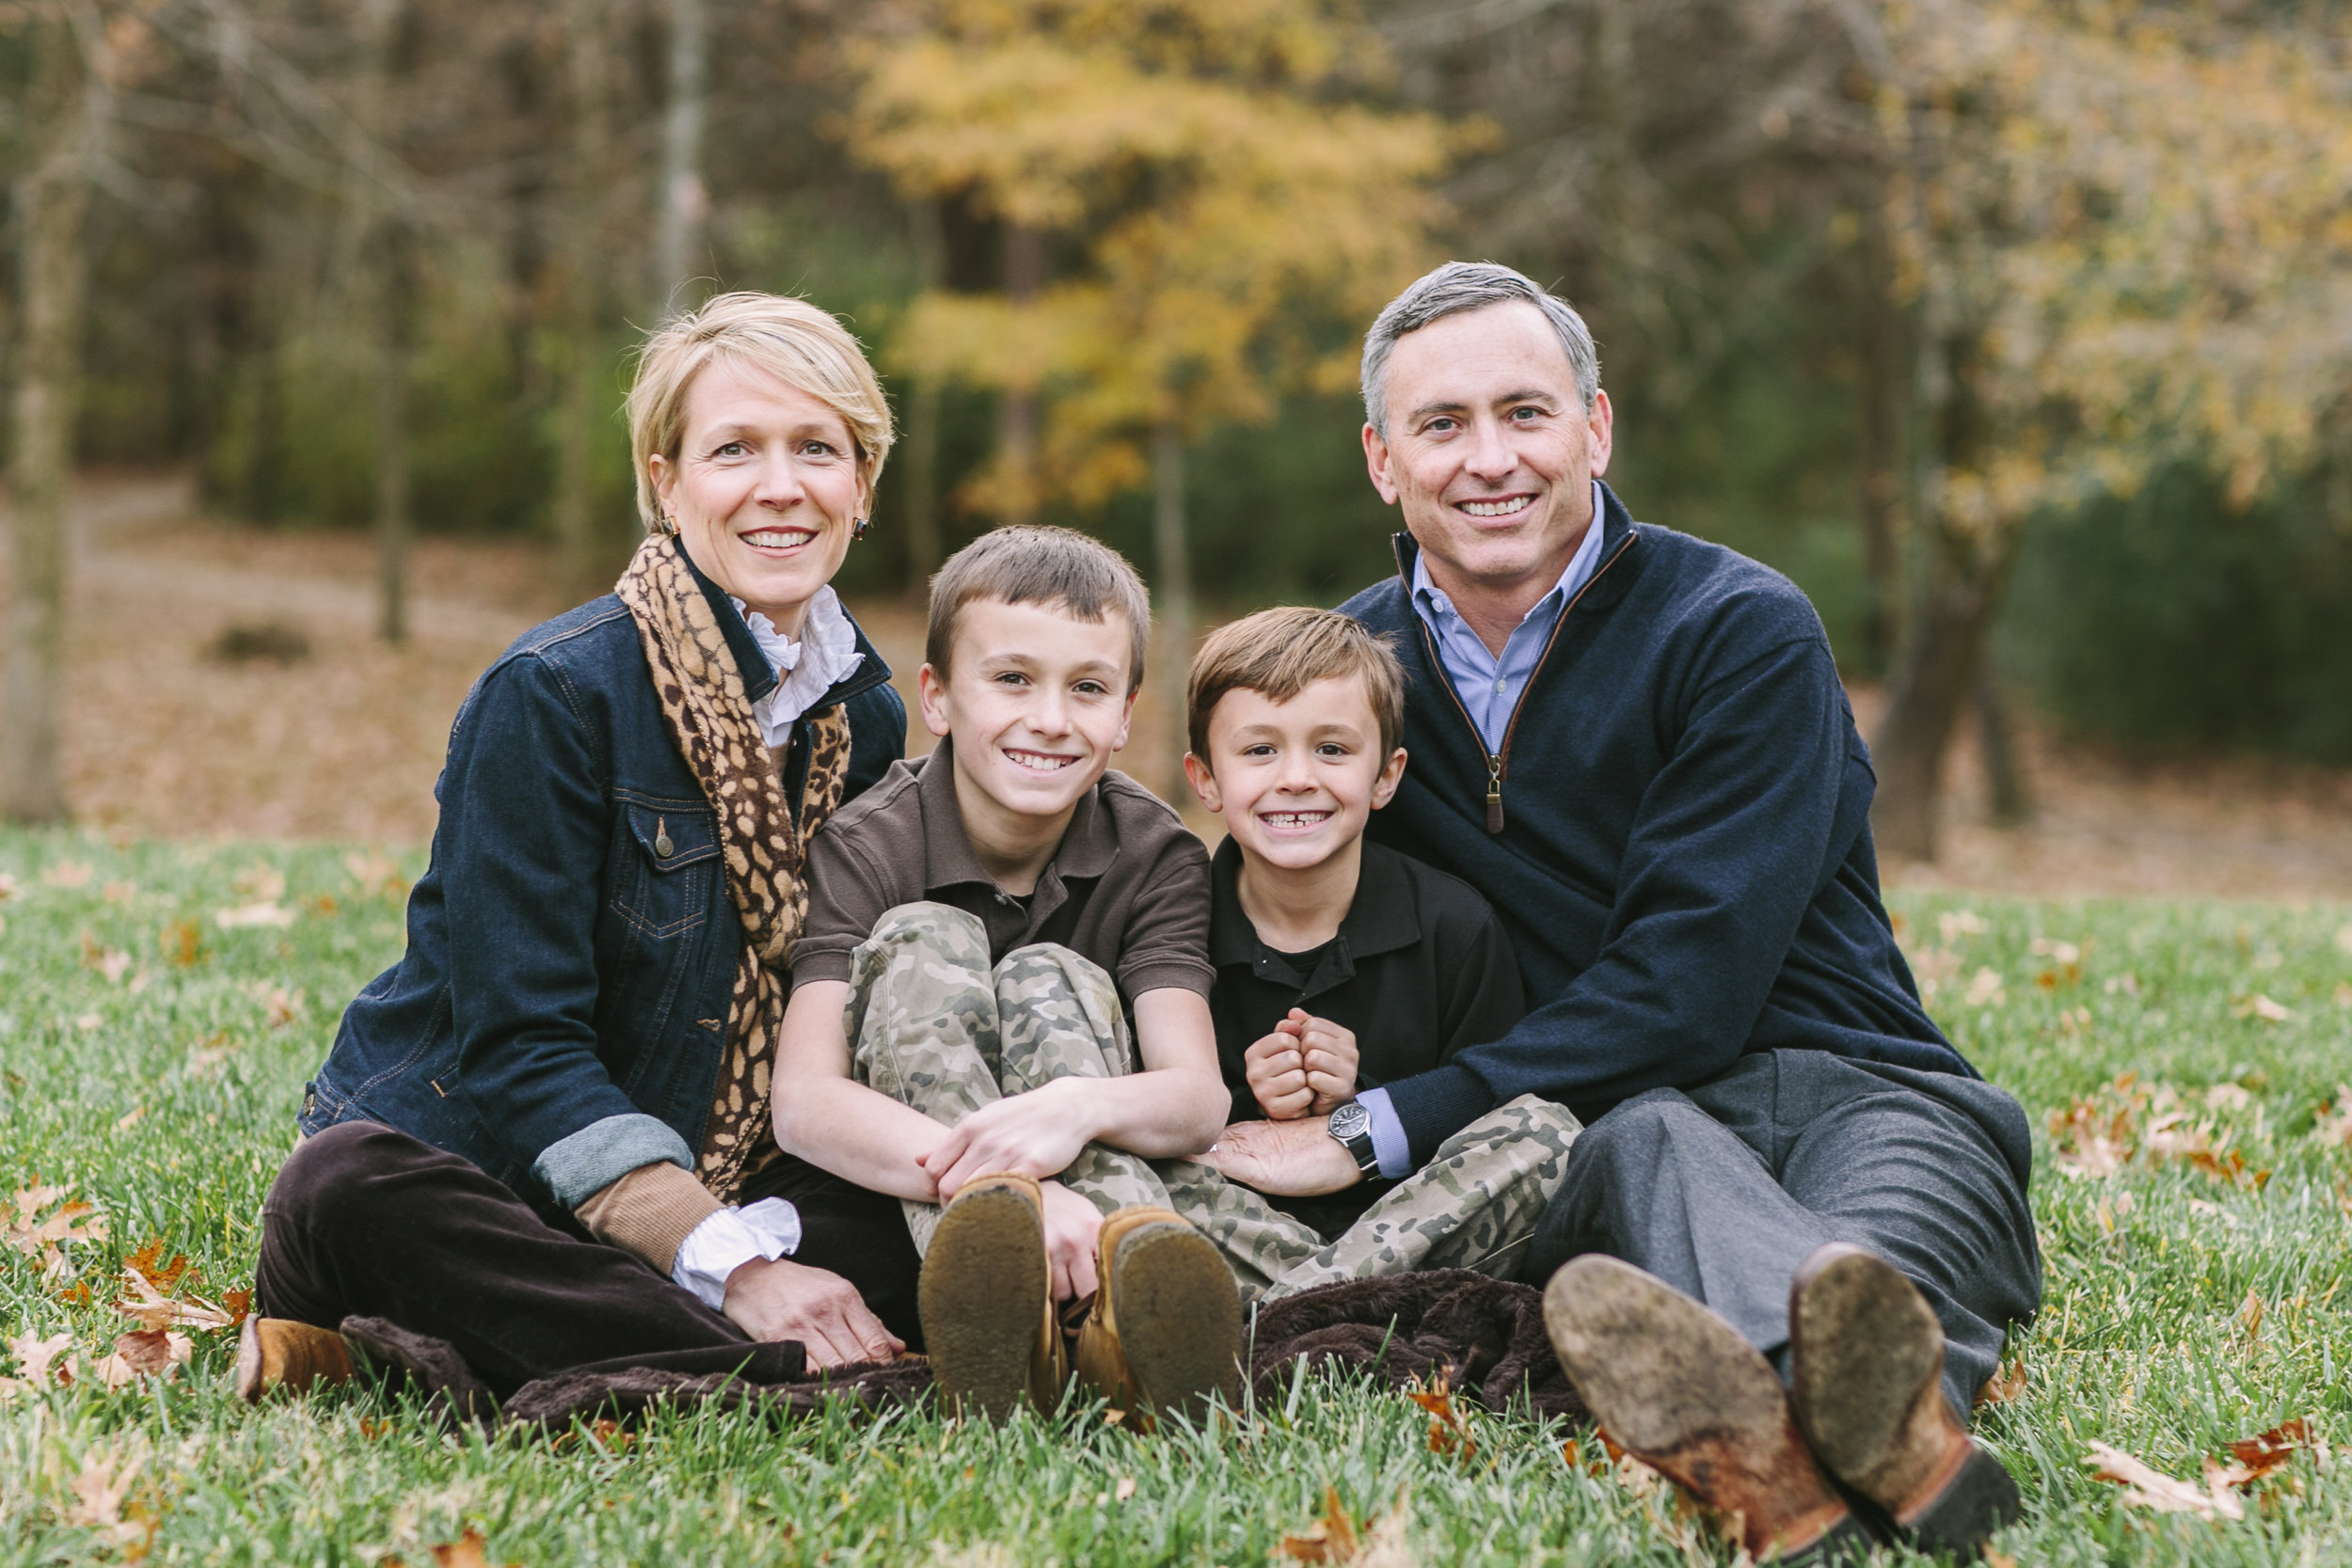 Brandon Chesbro Family Photographer Photo-20.jpg